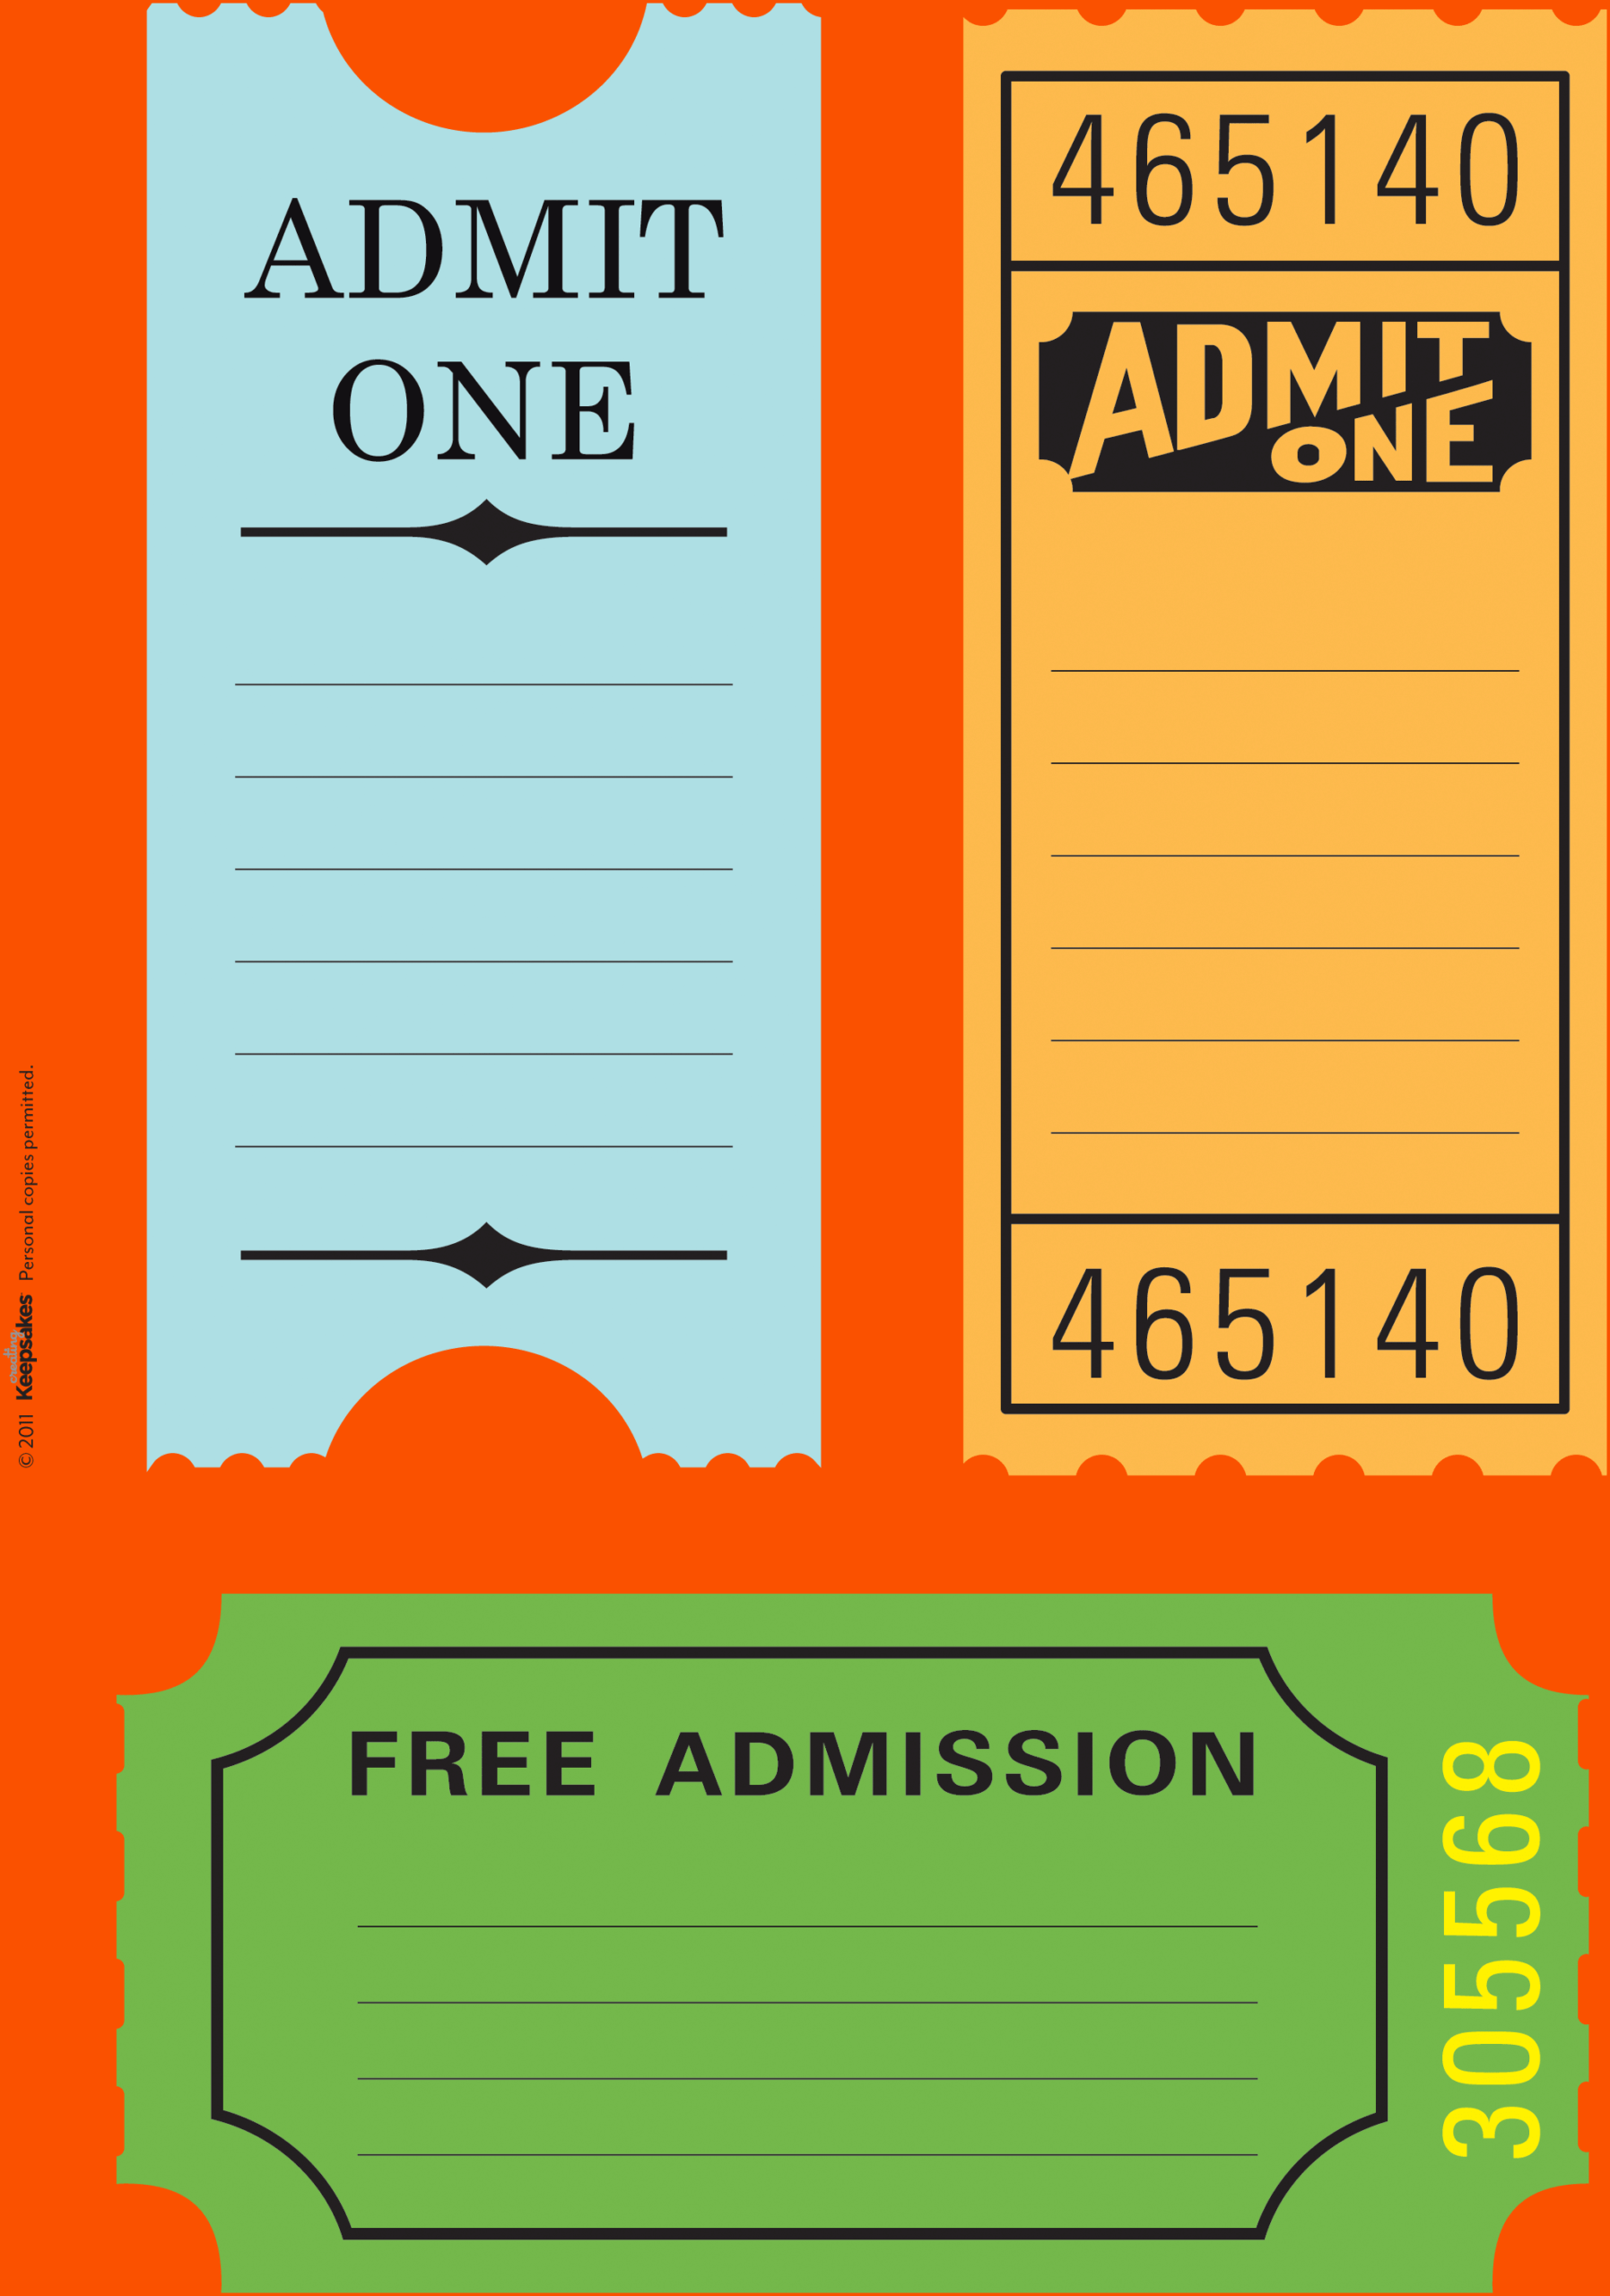 023 Free Printable Ticket Templates Travel Tickets Intended For Blank Admission Ticket Template